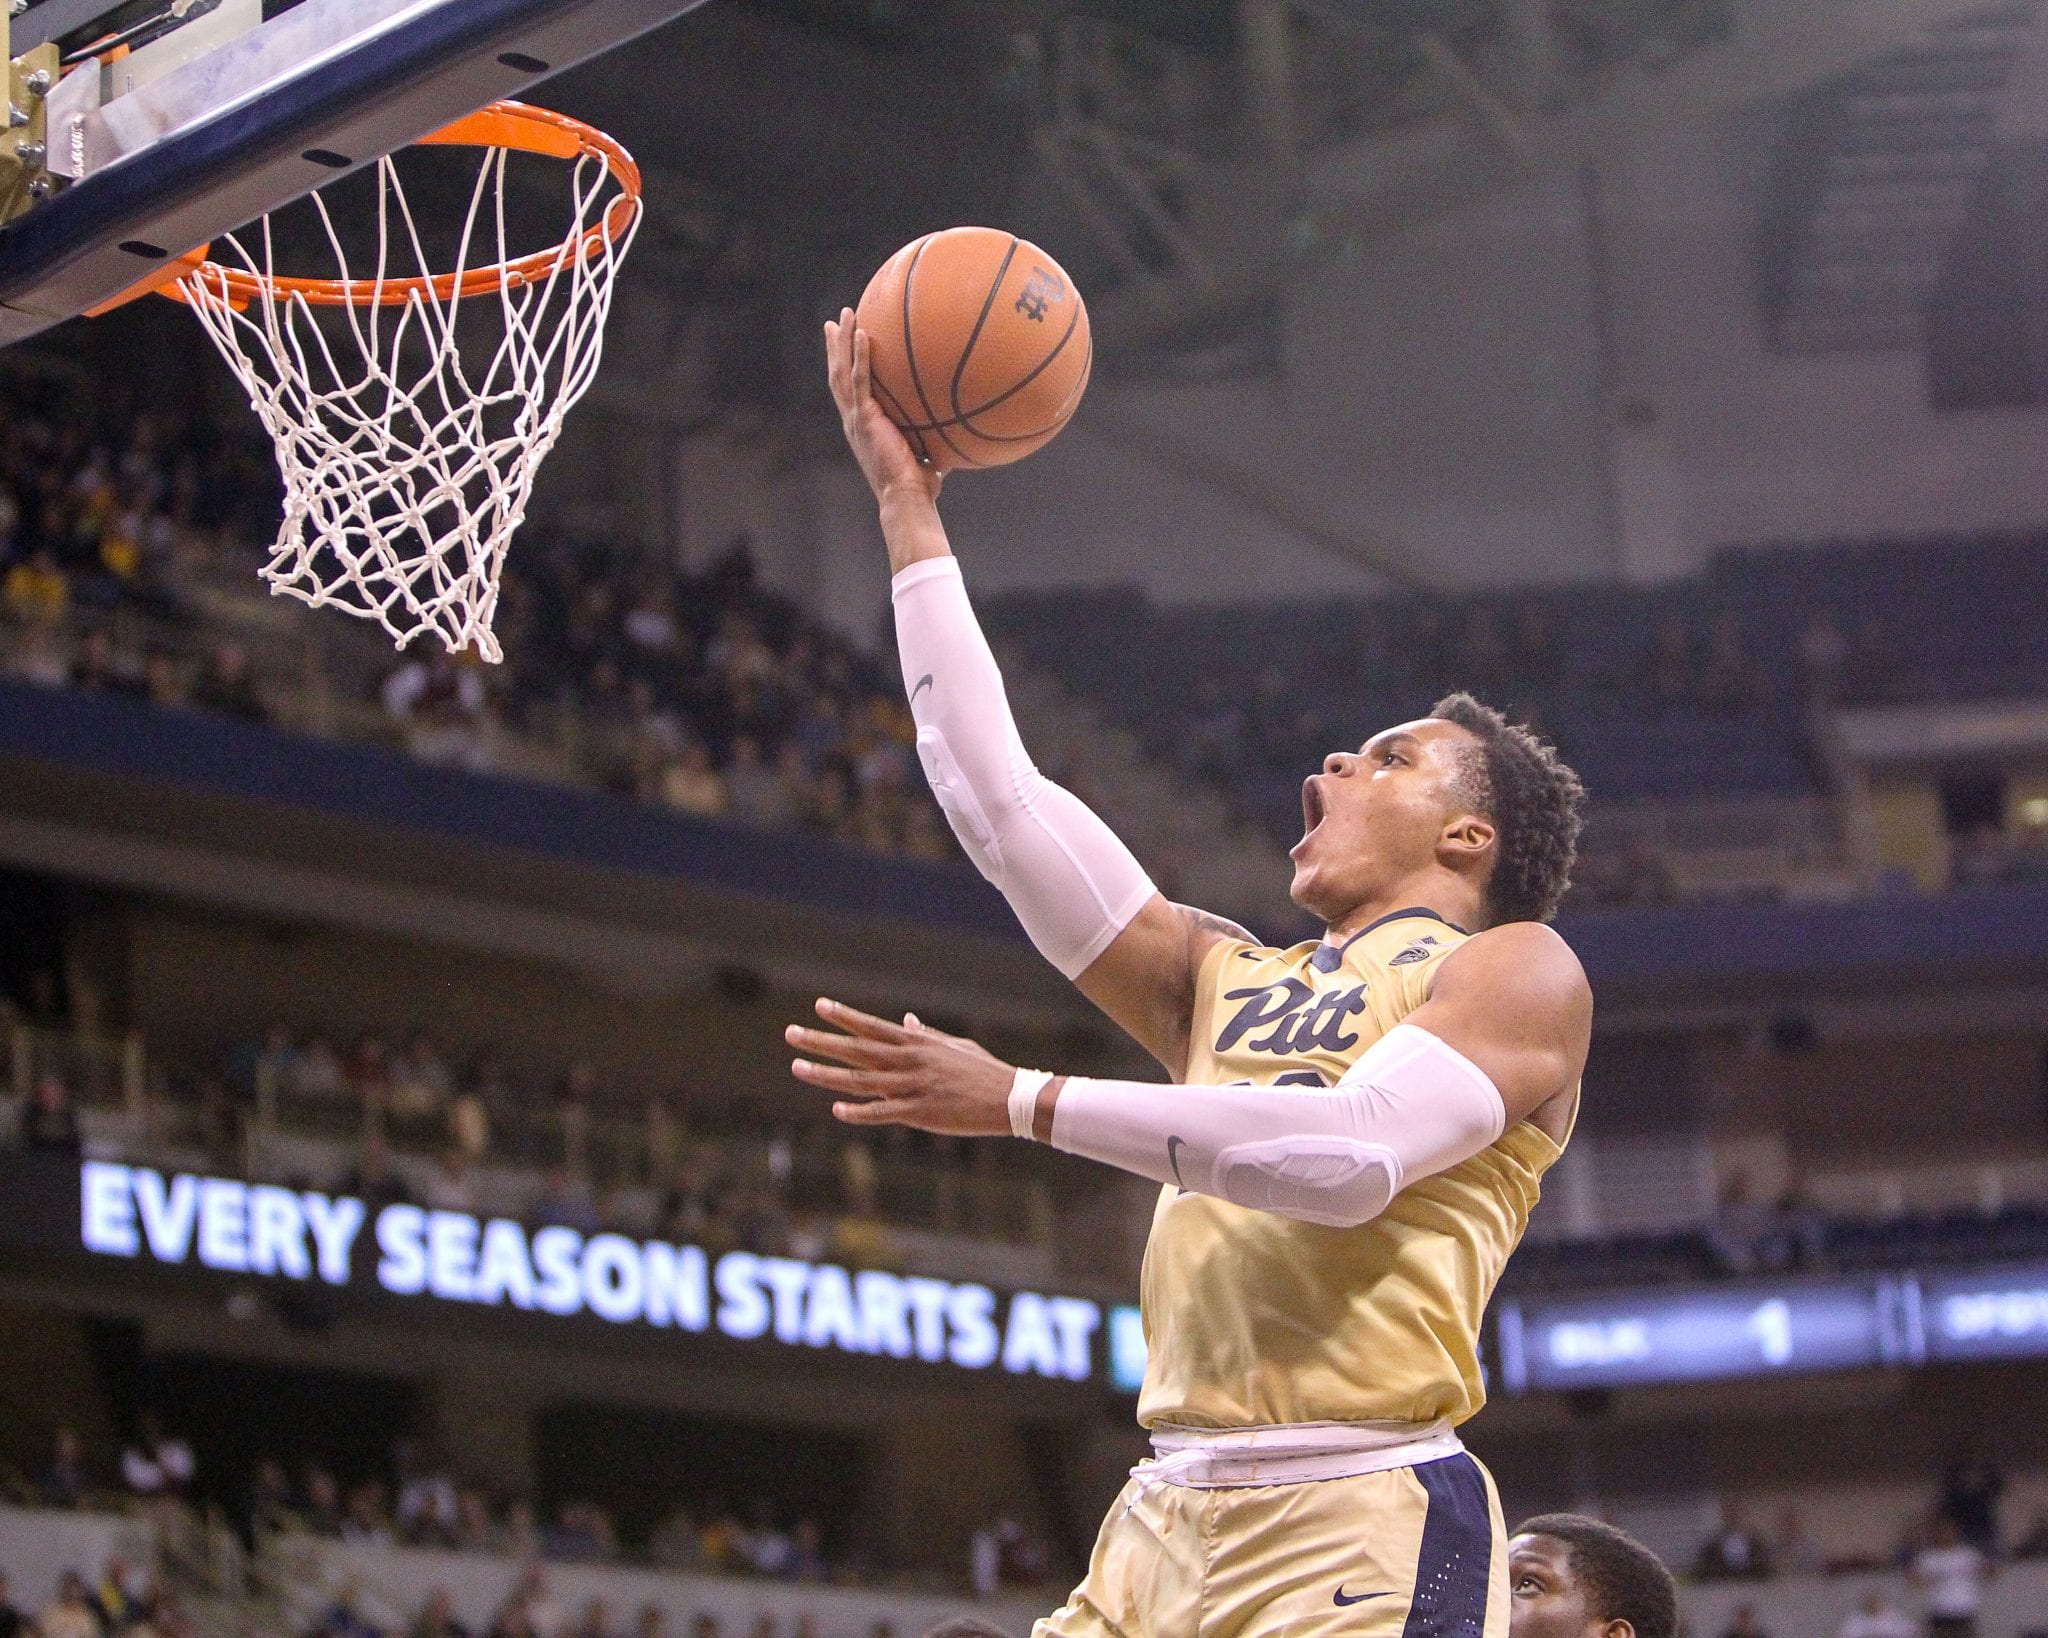 Shamiel Stevenson (23) goes in for a layup as the Pitt Panthers take on West Virginia on December 9, 2017 -- DAVID HAGUE